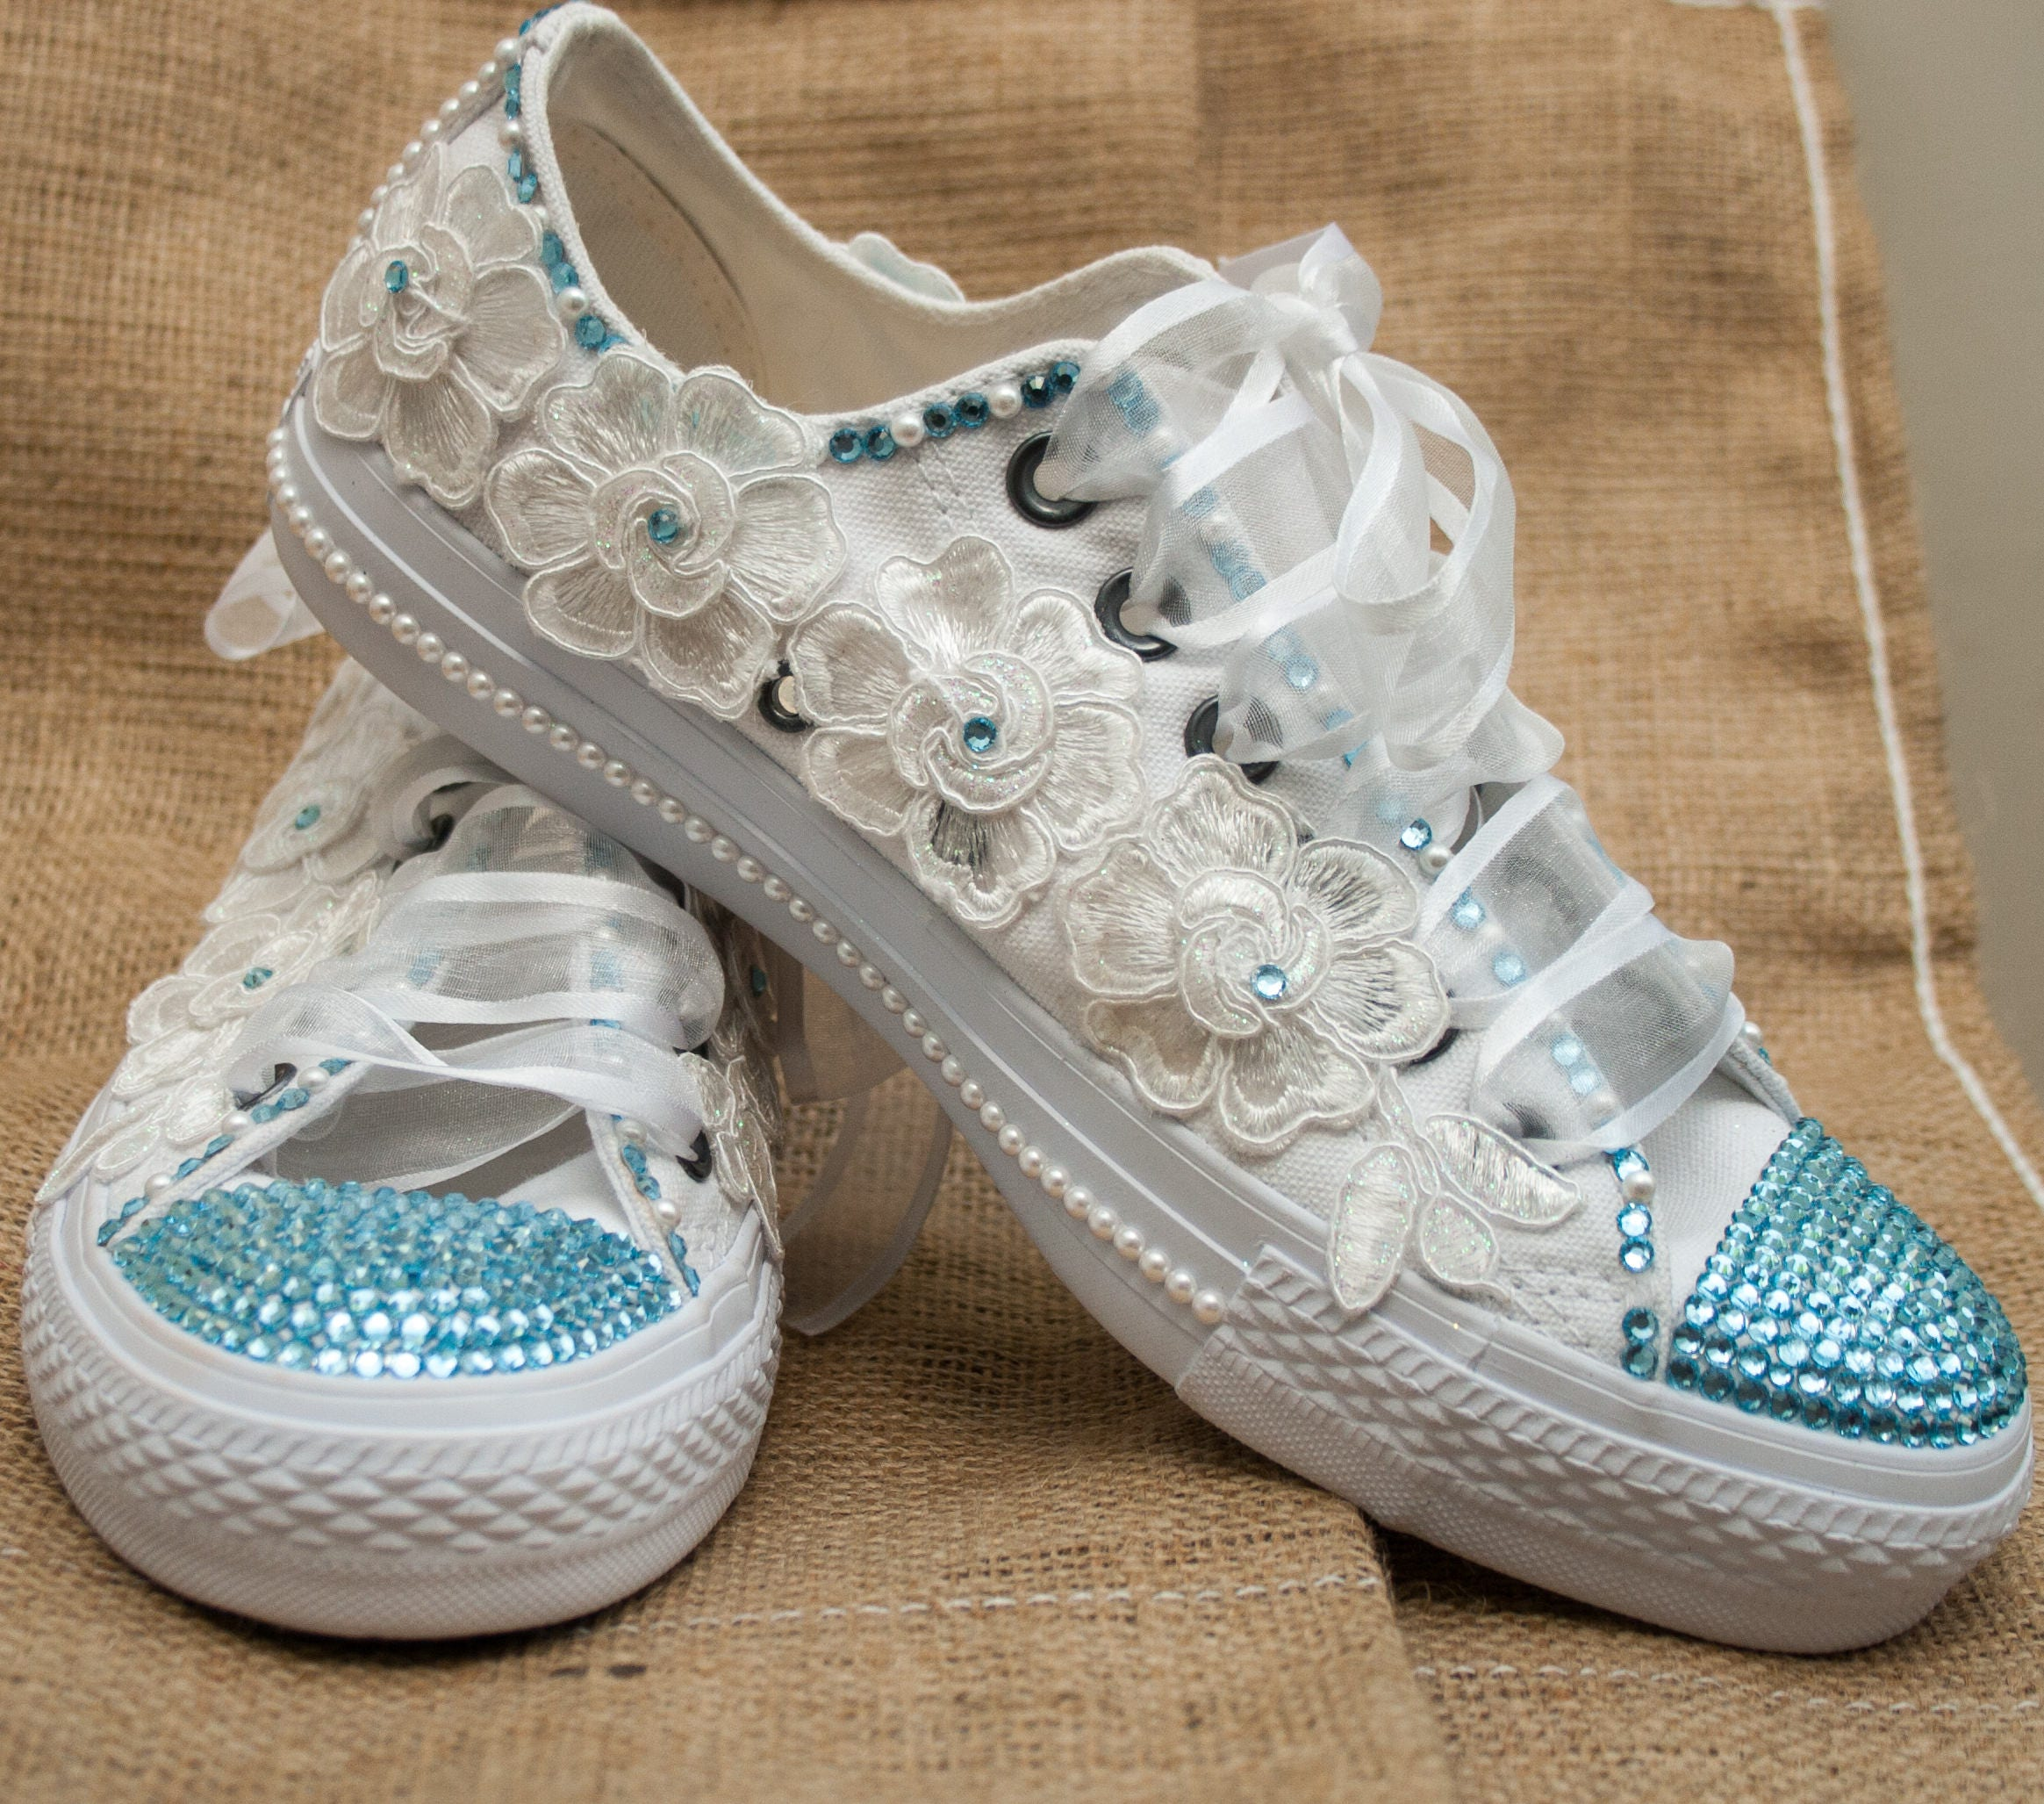 Customized wedding converse trainers with  crystals lace  pearls. Wedding trainers wedding converse bridal Converse with blue crystals